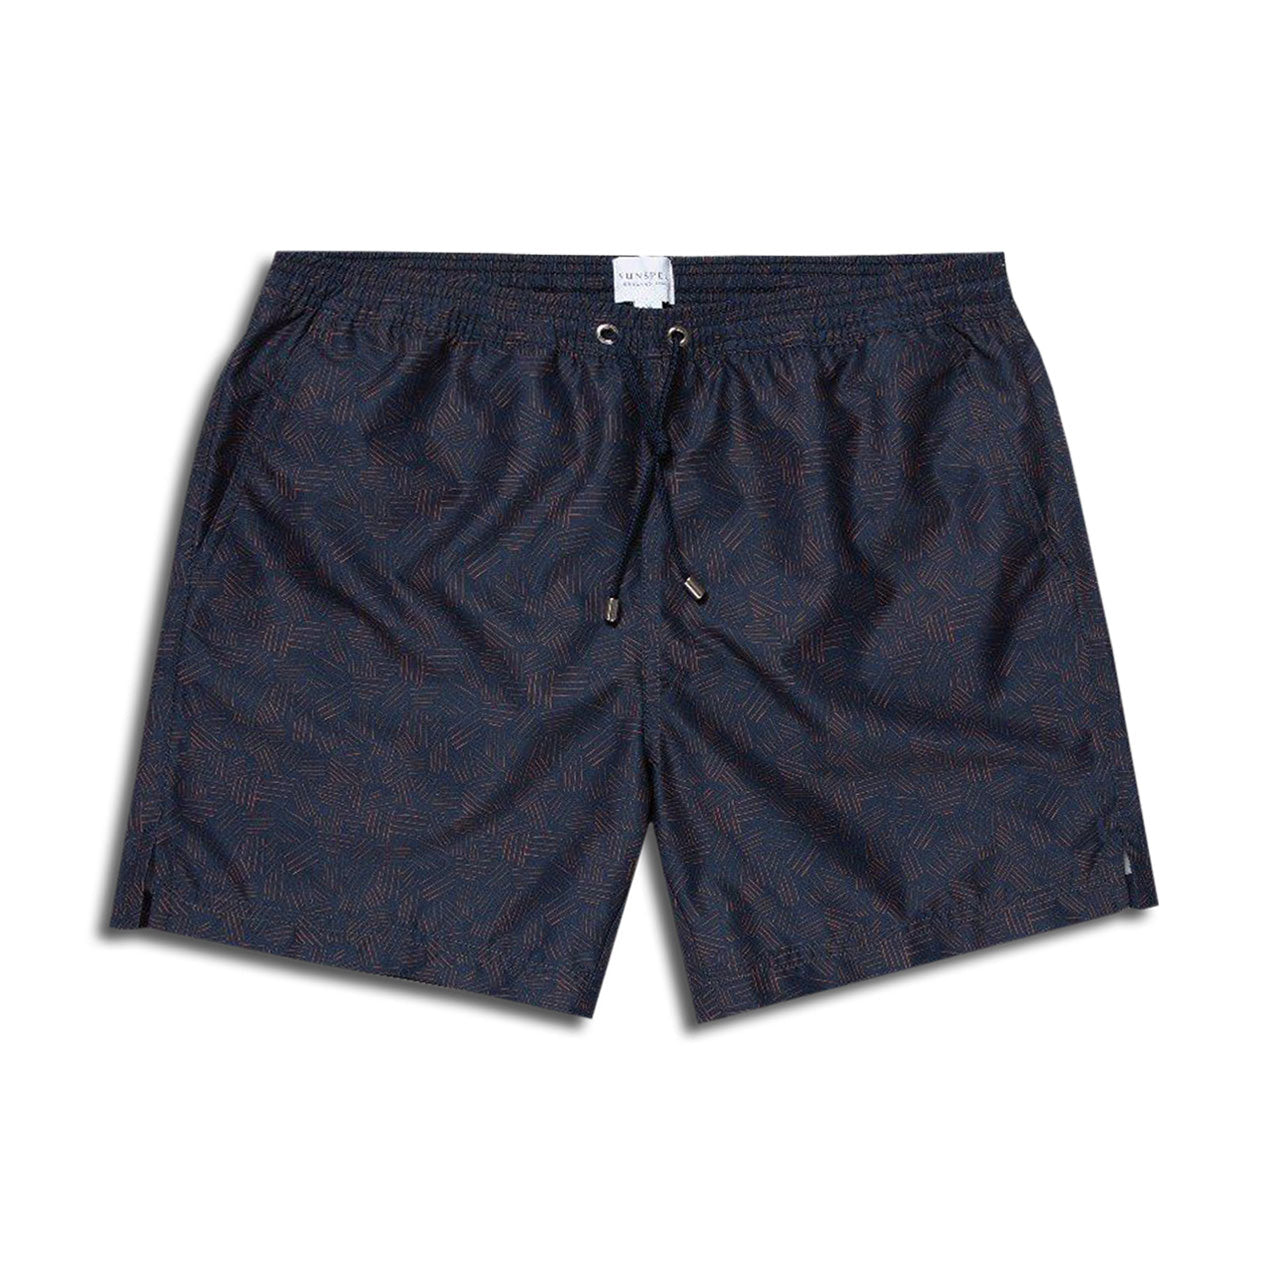 Sunspel Crosshatch Swim Trunks